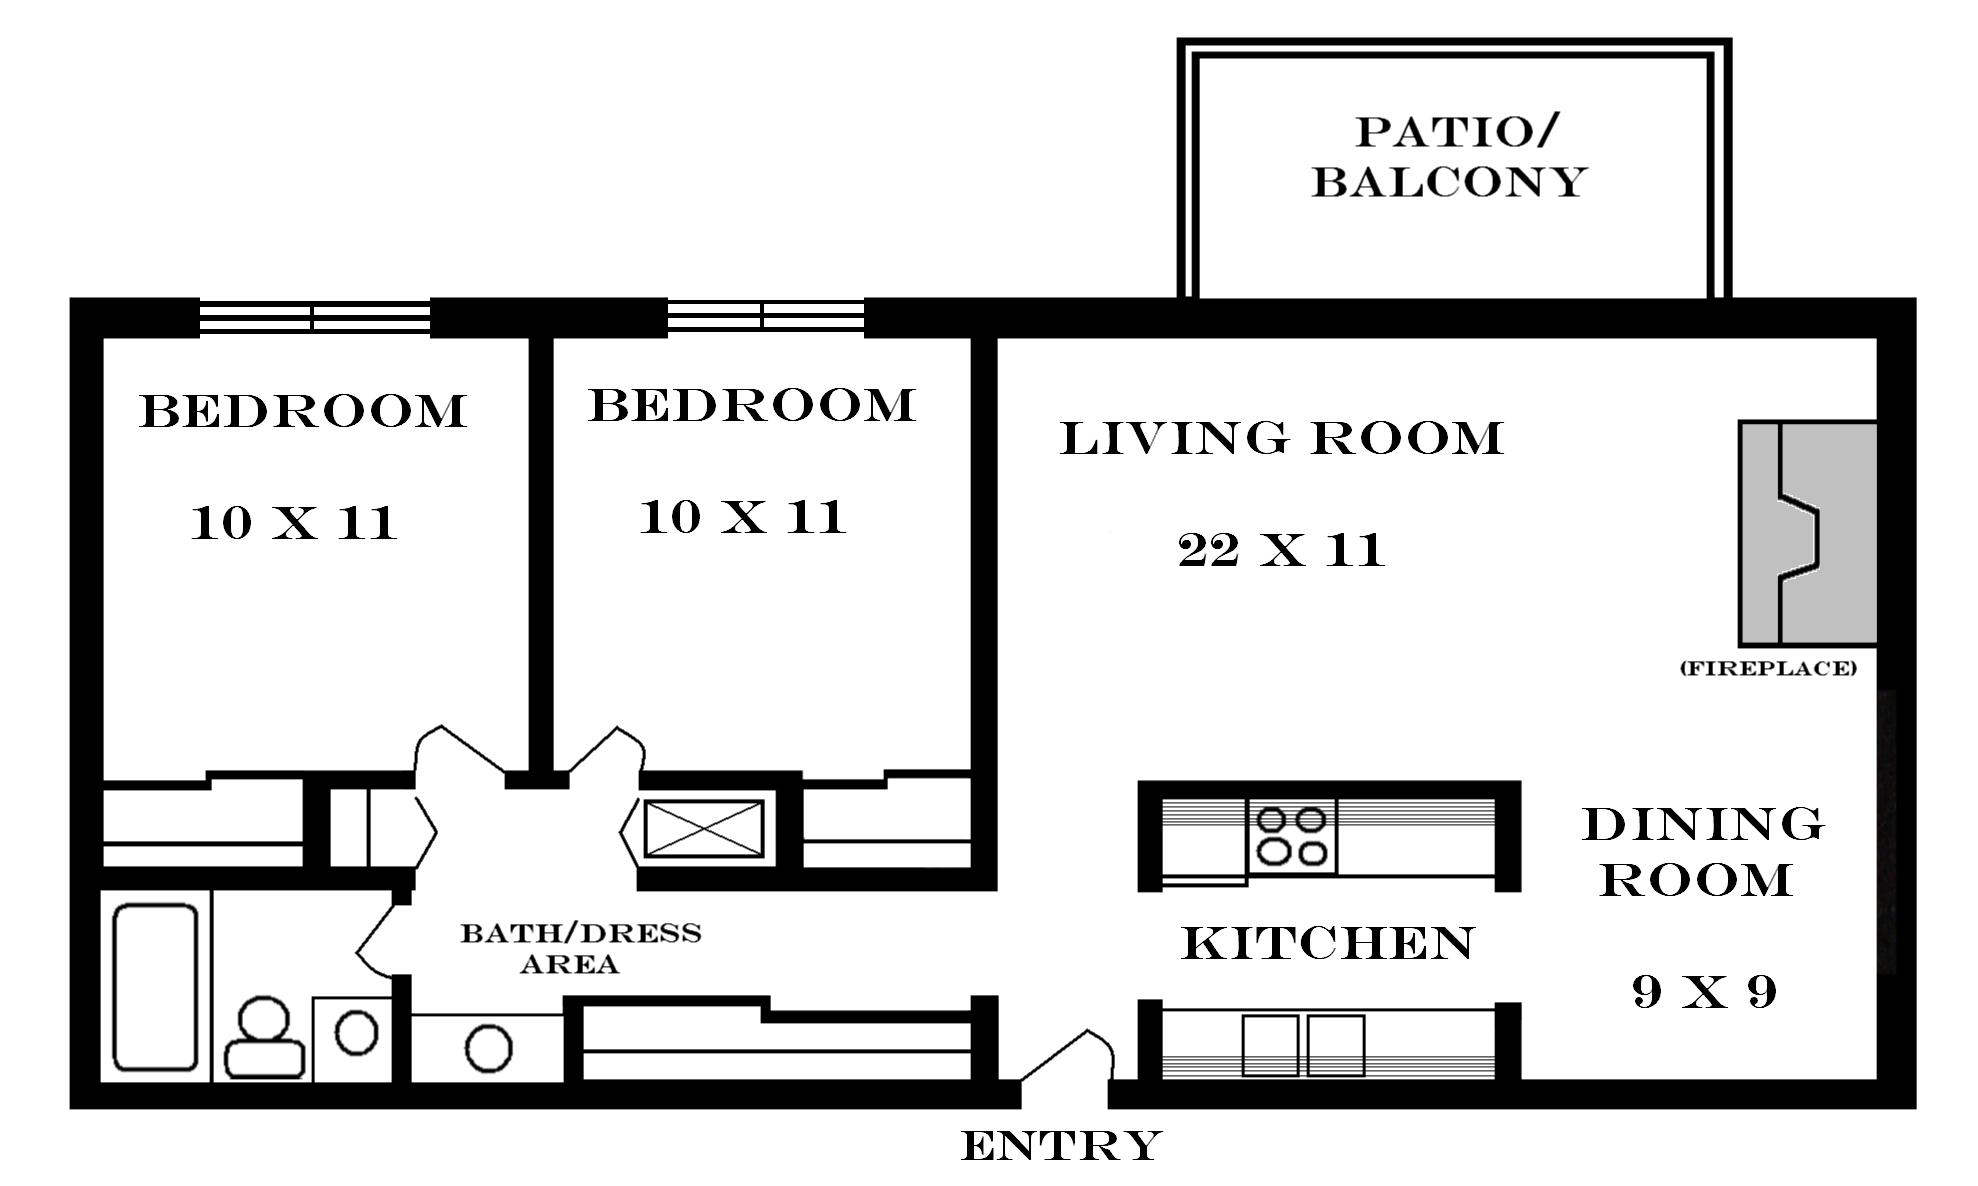 Lawrence apartments meadowbrook 2601 dover square for 2 bedroom flat design plans